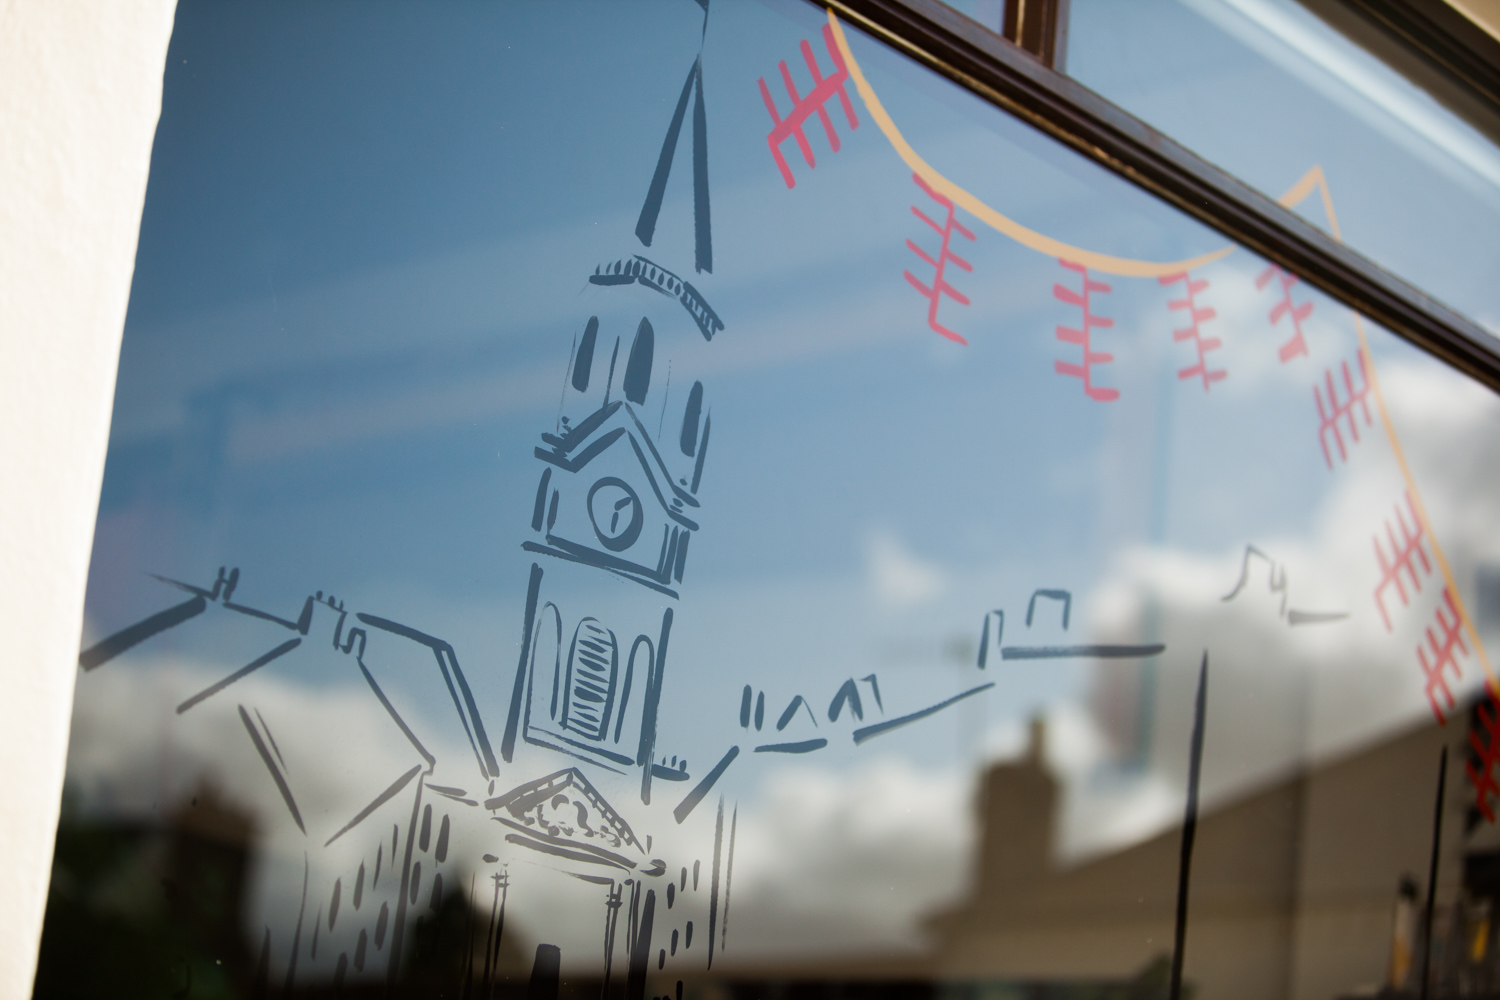 Katie_Draws_Pictorial_Photography_Chappell_Tour_of_Britian_window-painting-live-illustration-photography-graphic-mural-presentation-IMG_6240.jpg